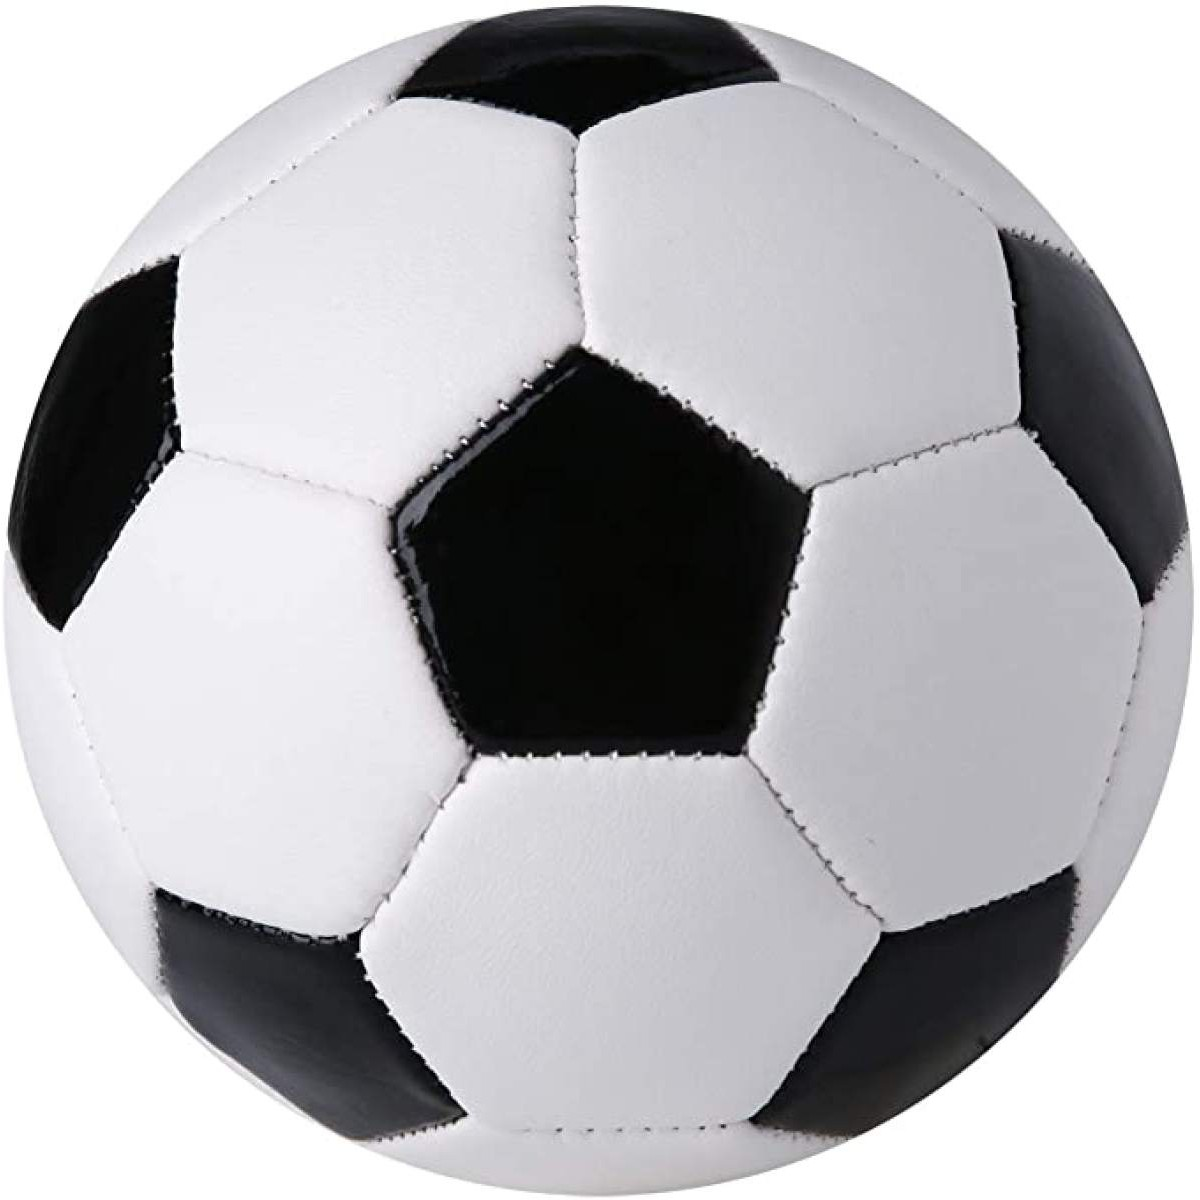 kinder toys - Beautiful Standard Size Leather - Football - Football for Professional Game, For Boys Or Kids Foot ball Games